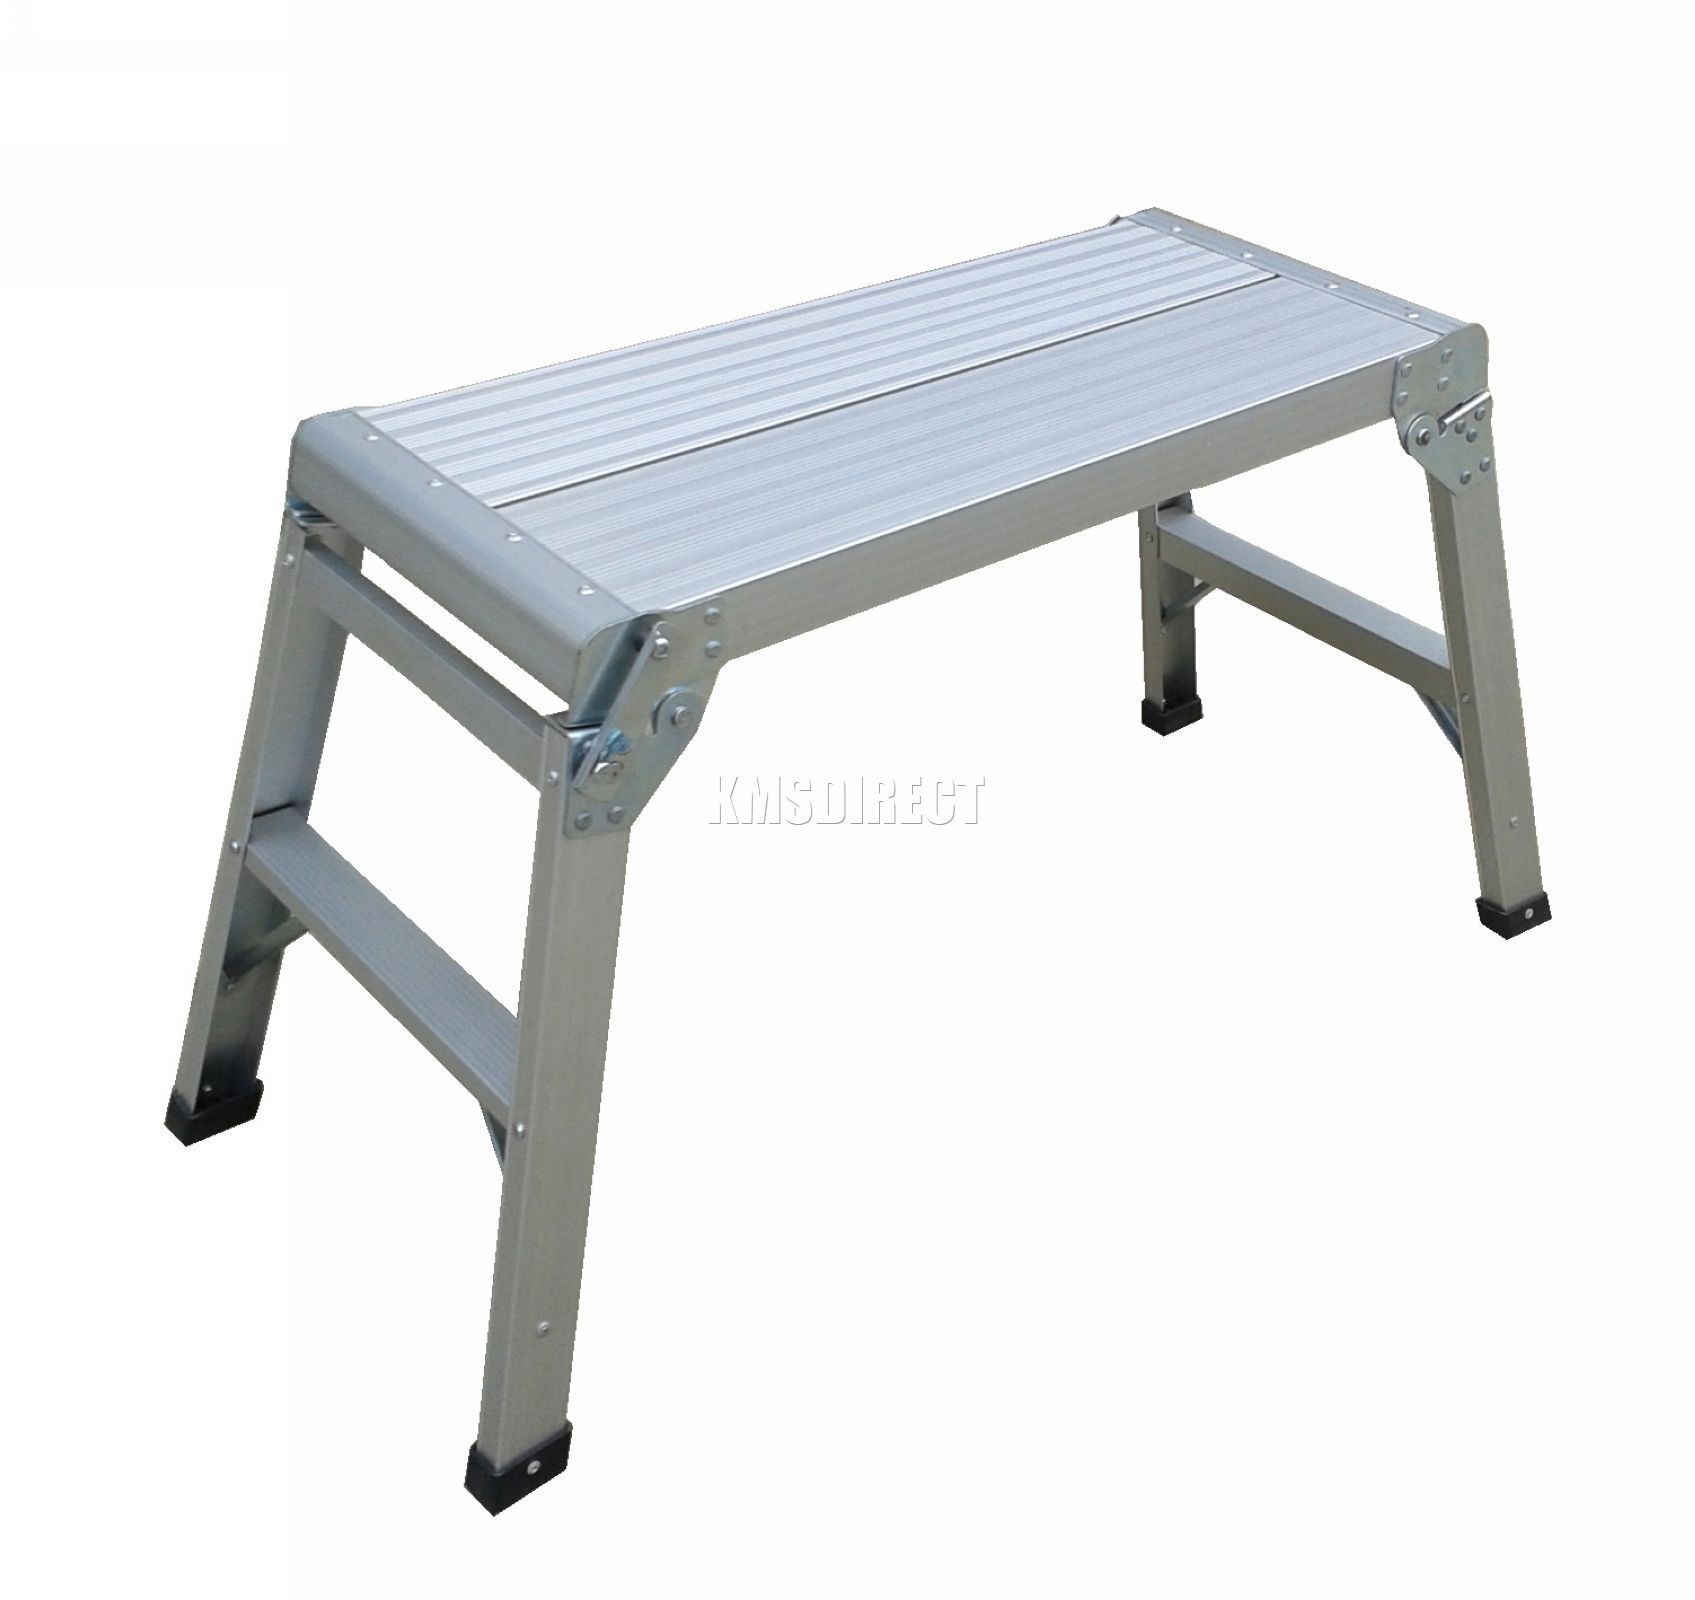 Small Folding Step Hop Up Aluminium Work Bench Platform